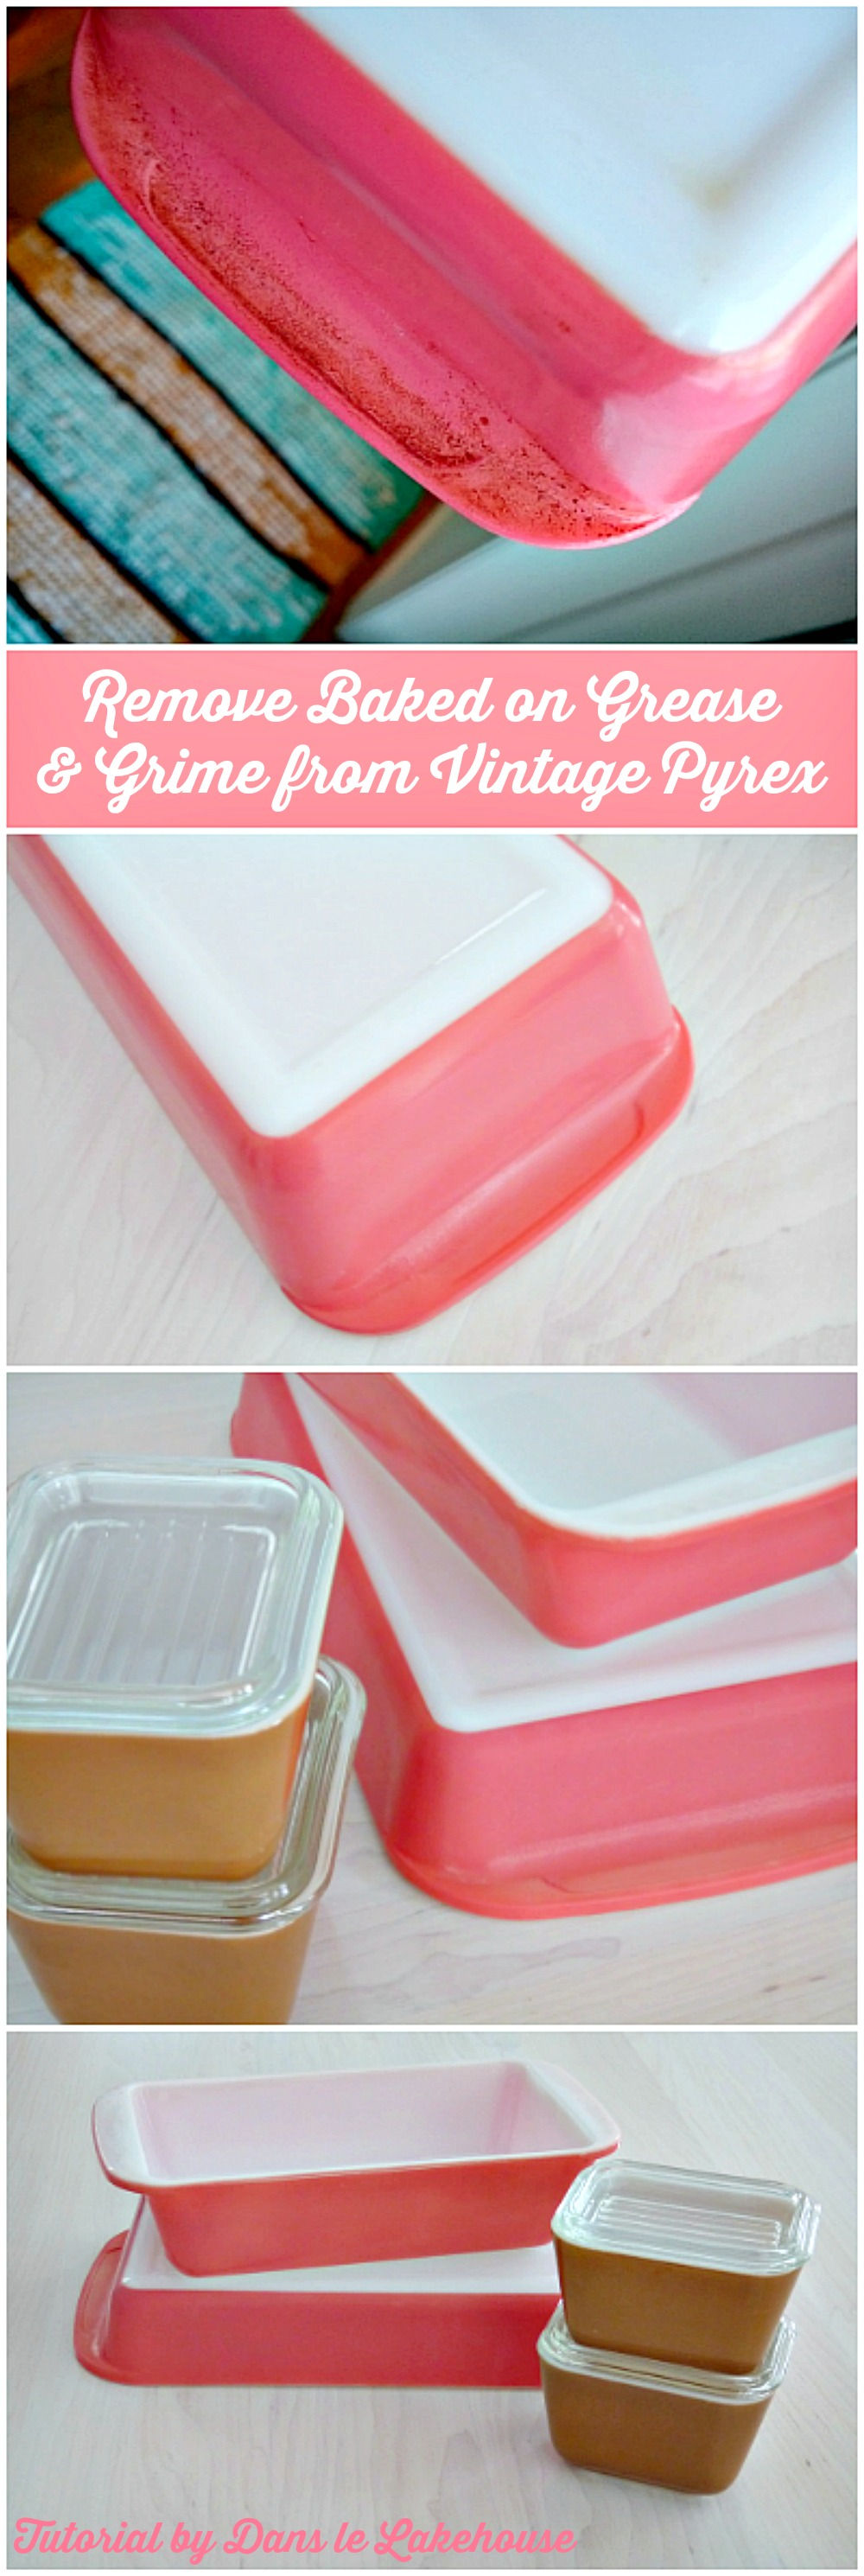 Use Oven Cleaner to Remove Burnt on Grease from Pyrex Bakeware